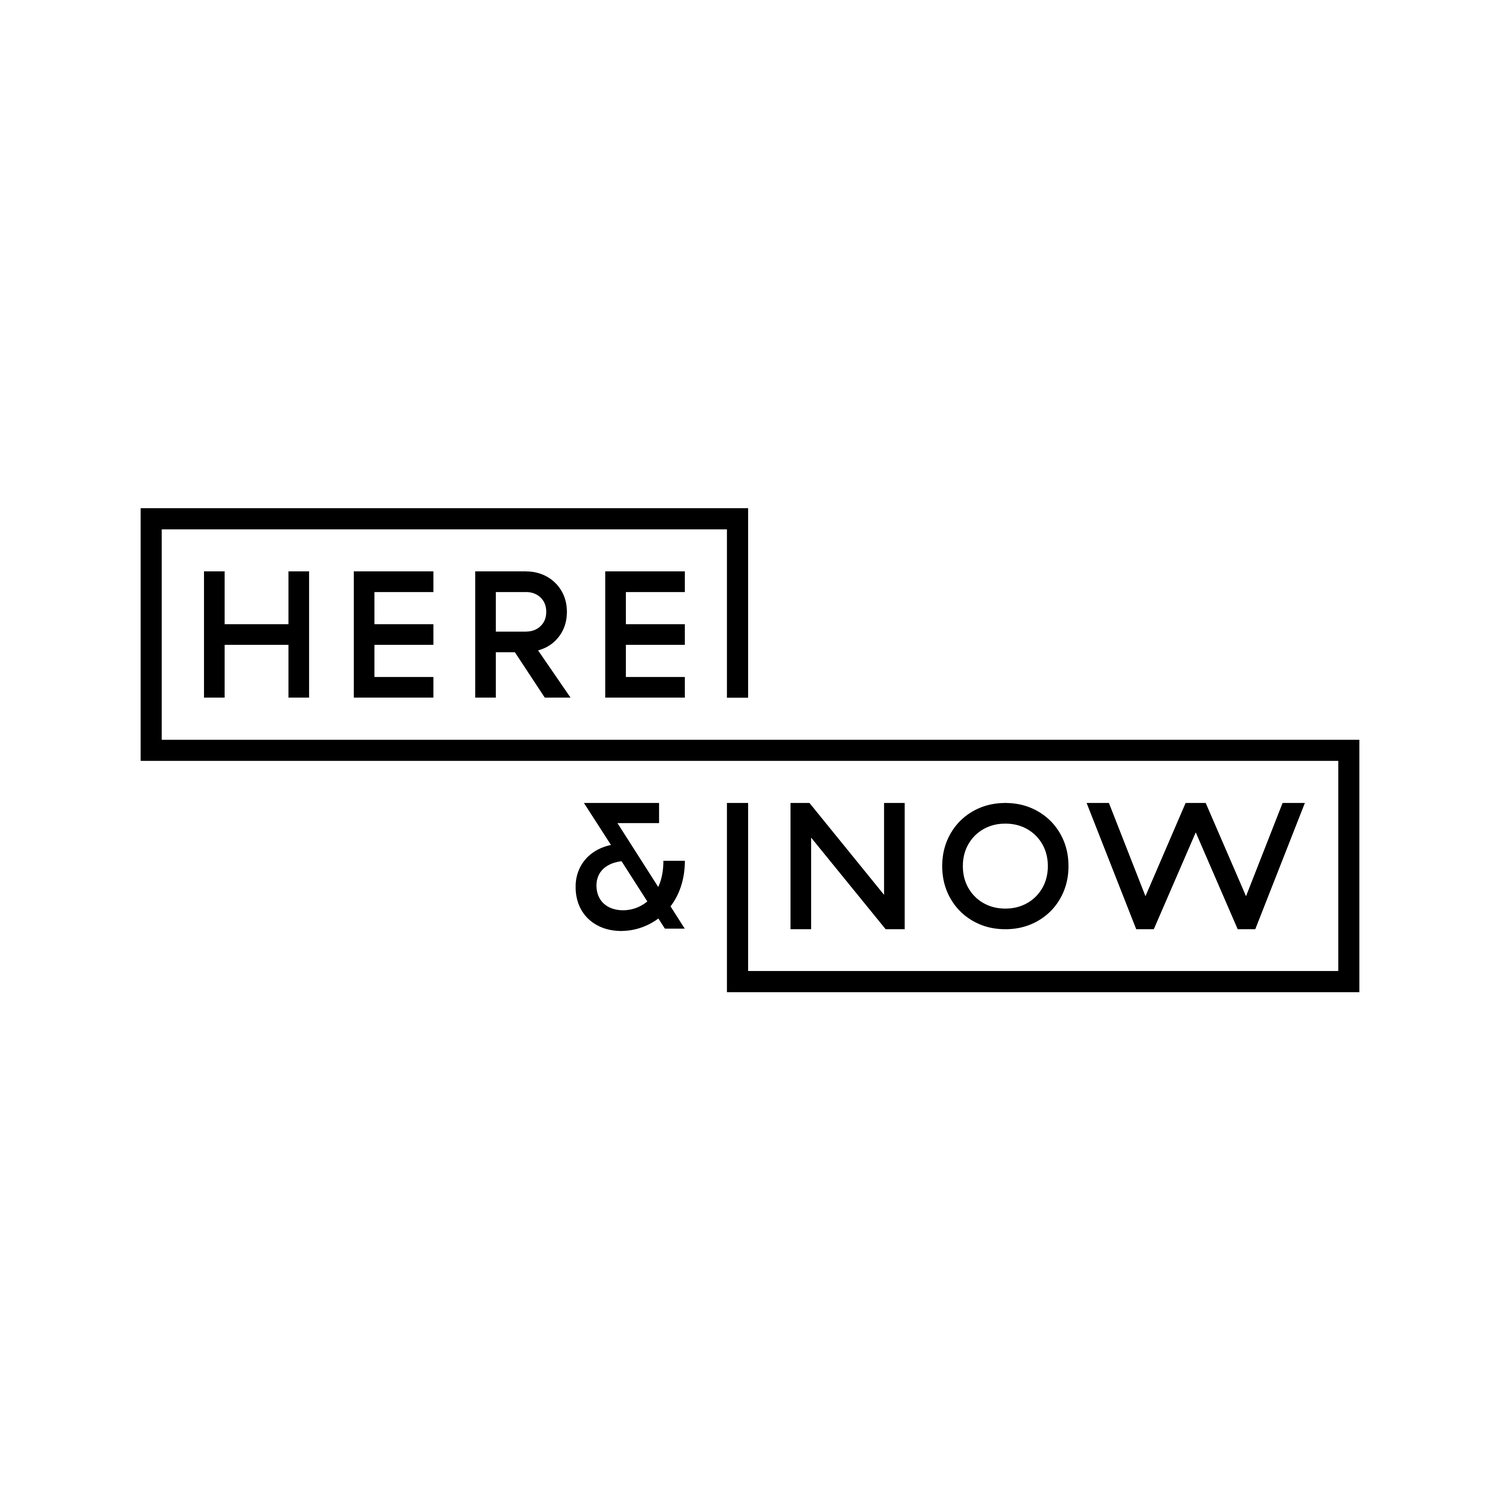 Here & Now Recordings - new music from the worlds finest composers and producers